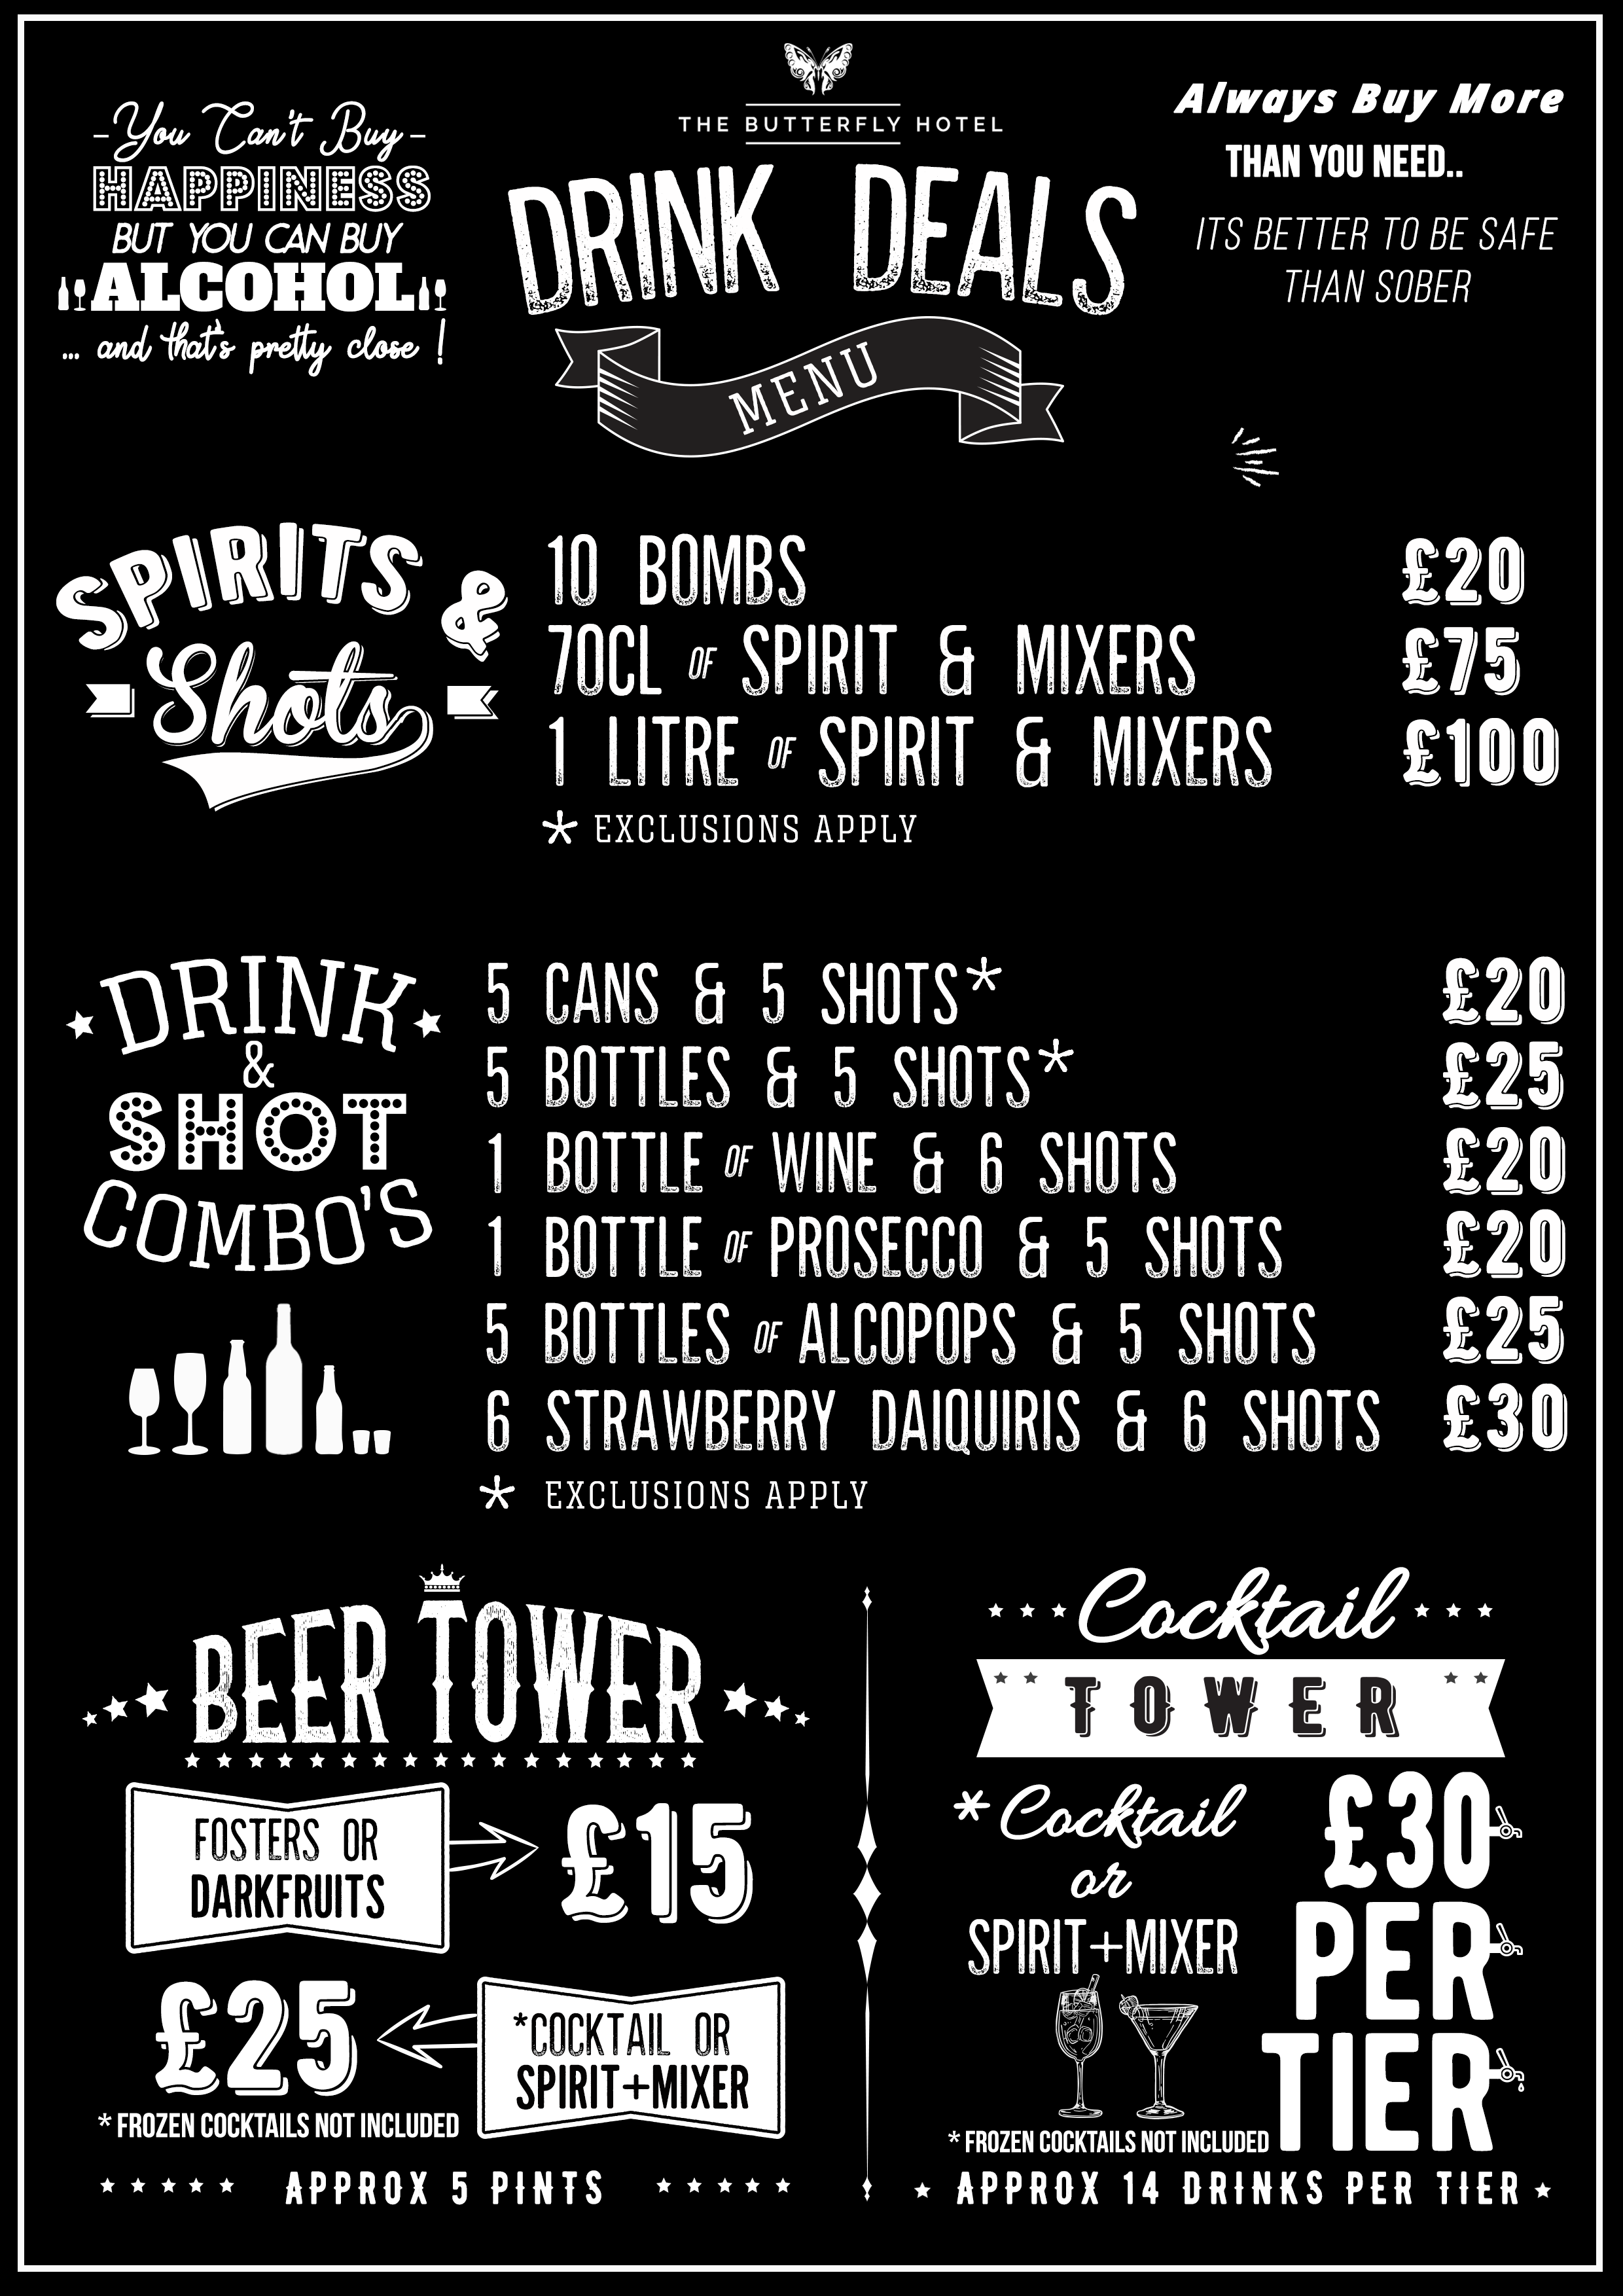 The Butterfly Hotel Drink Deals Menu